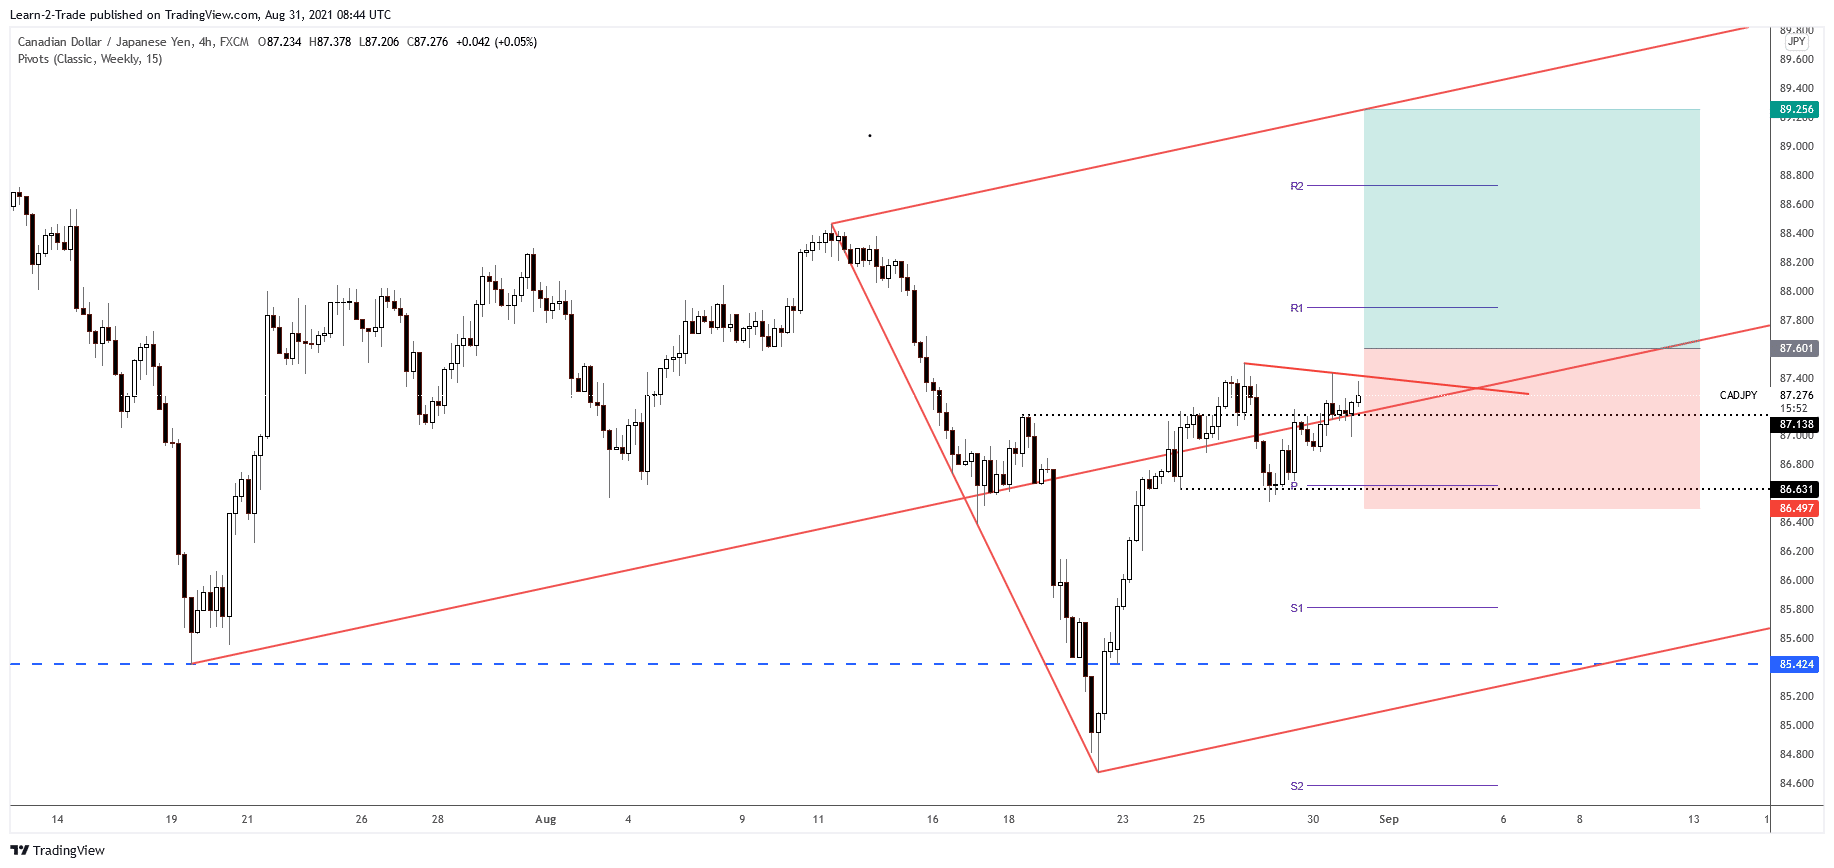 CAD/JPY 4-hour price chart